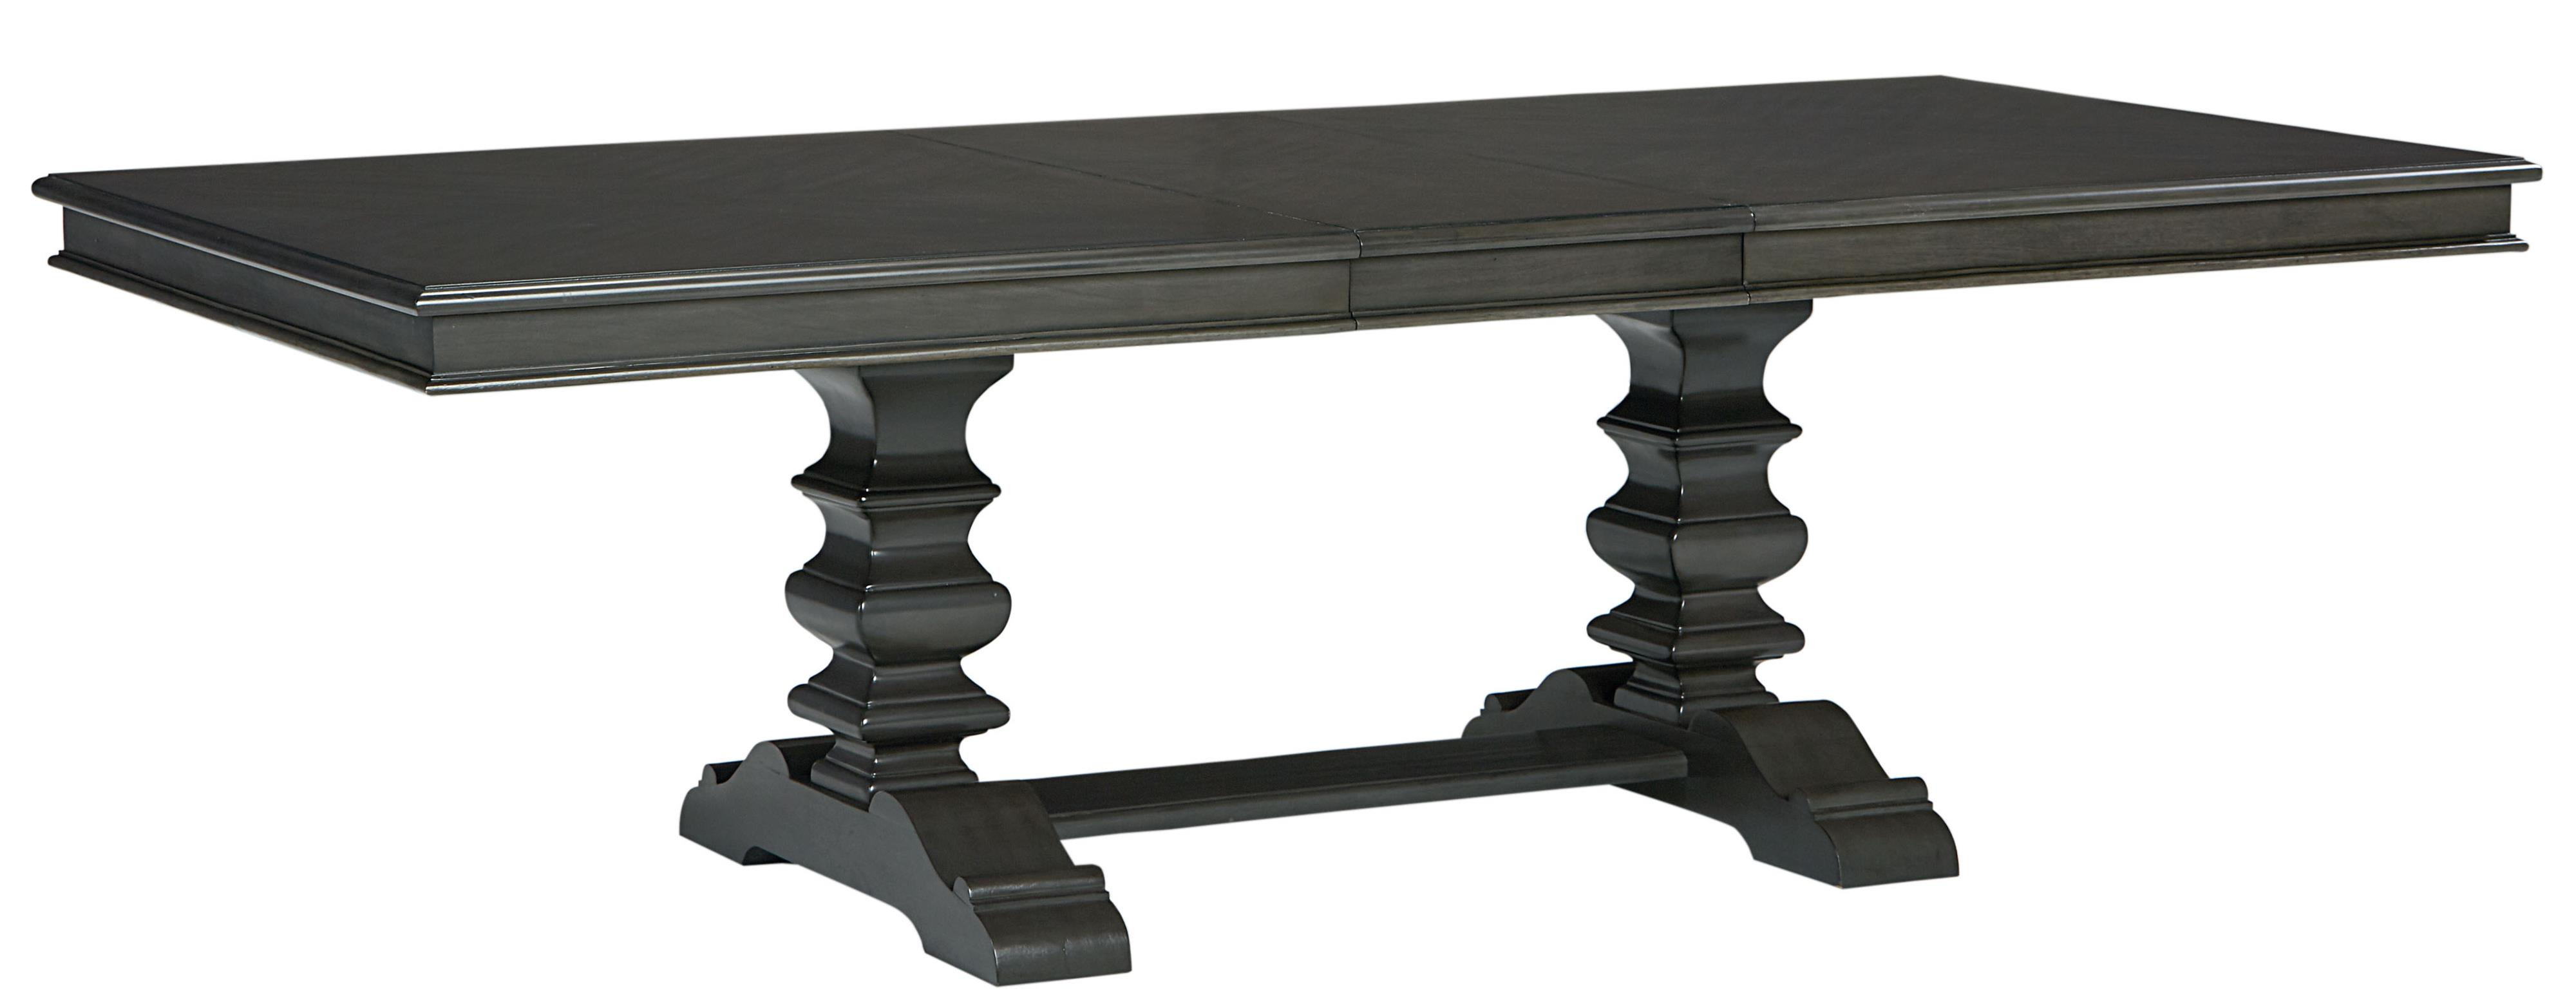 trestle dining table grey trestle dining table with smooth grey finish by standard 6376